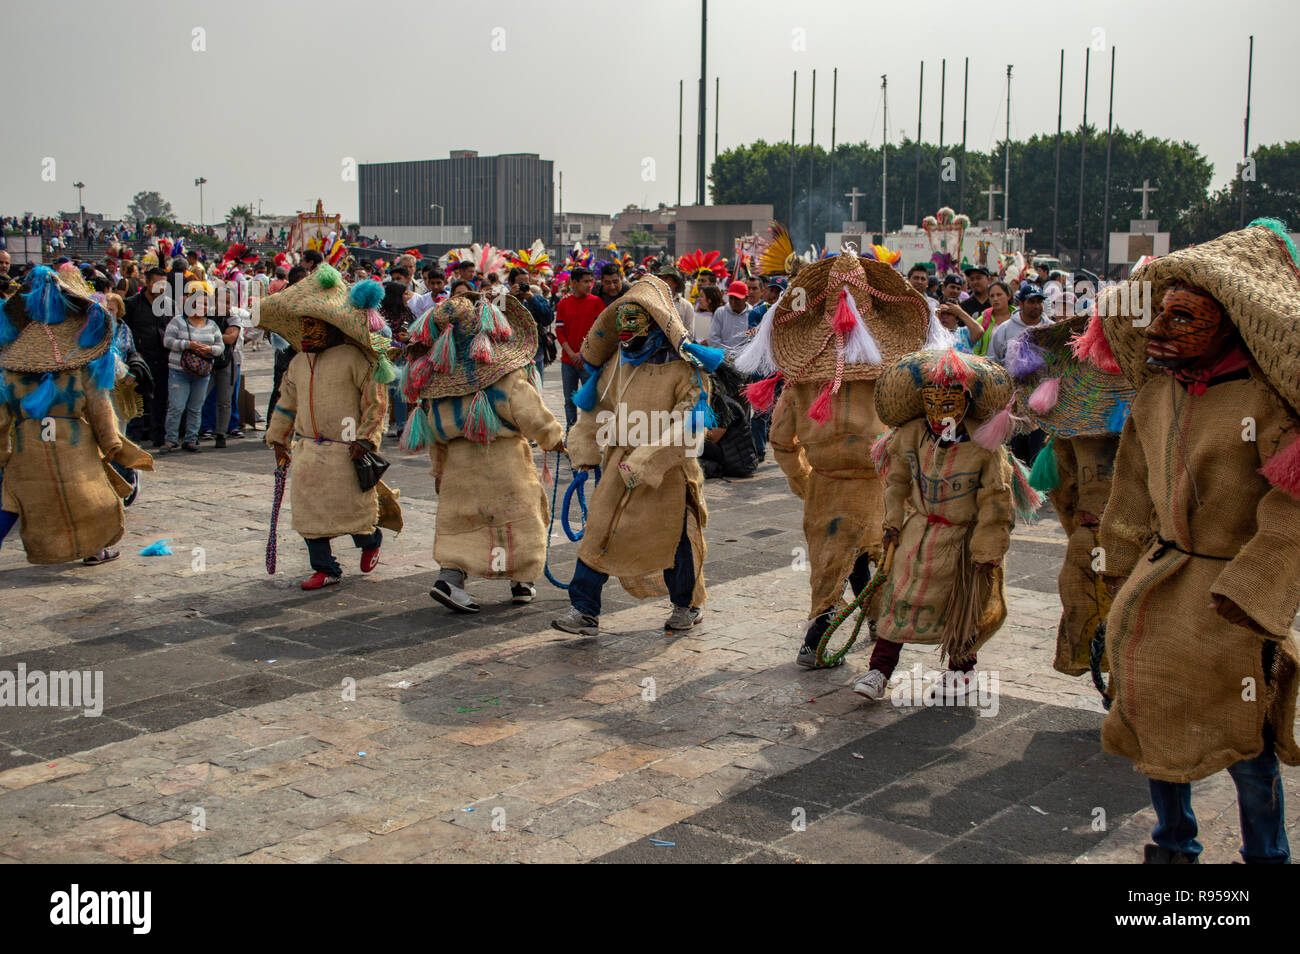 A traditional Mexican dance at the Basilica of Our Lady of Guadalupe in Mexico City, Mexico Stock Photo